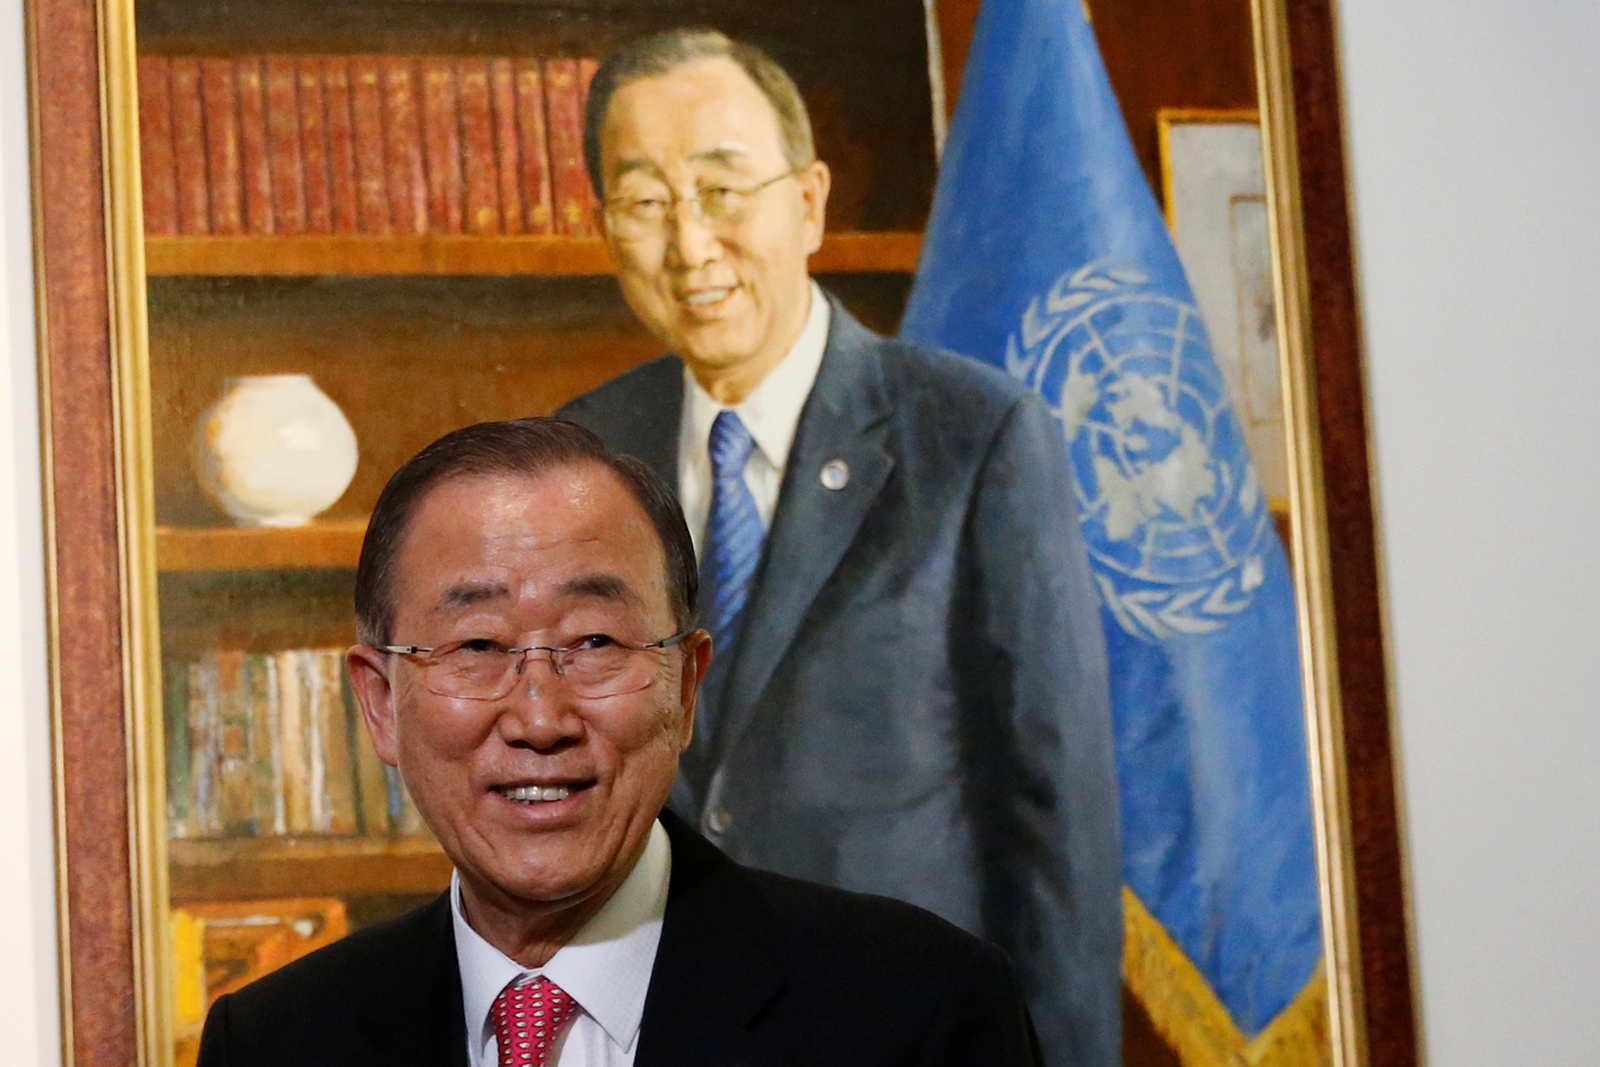 Outgoing United Nations Secretary General Ban Ki-moon